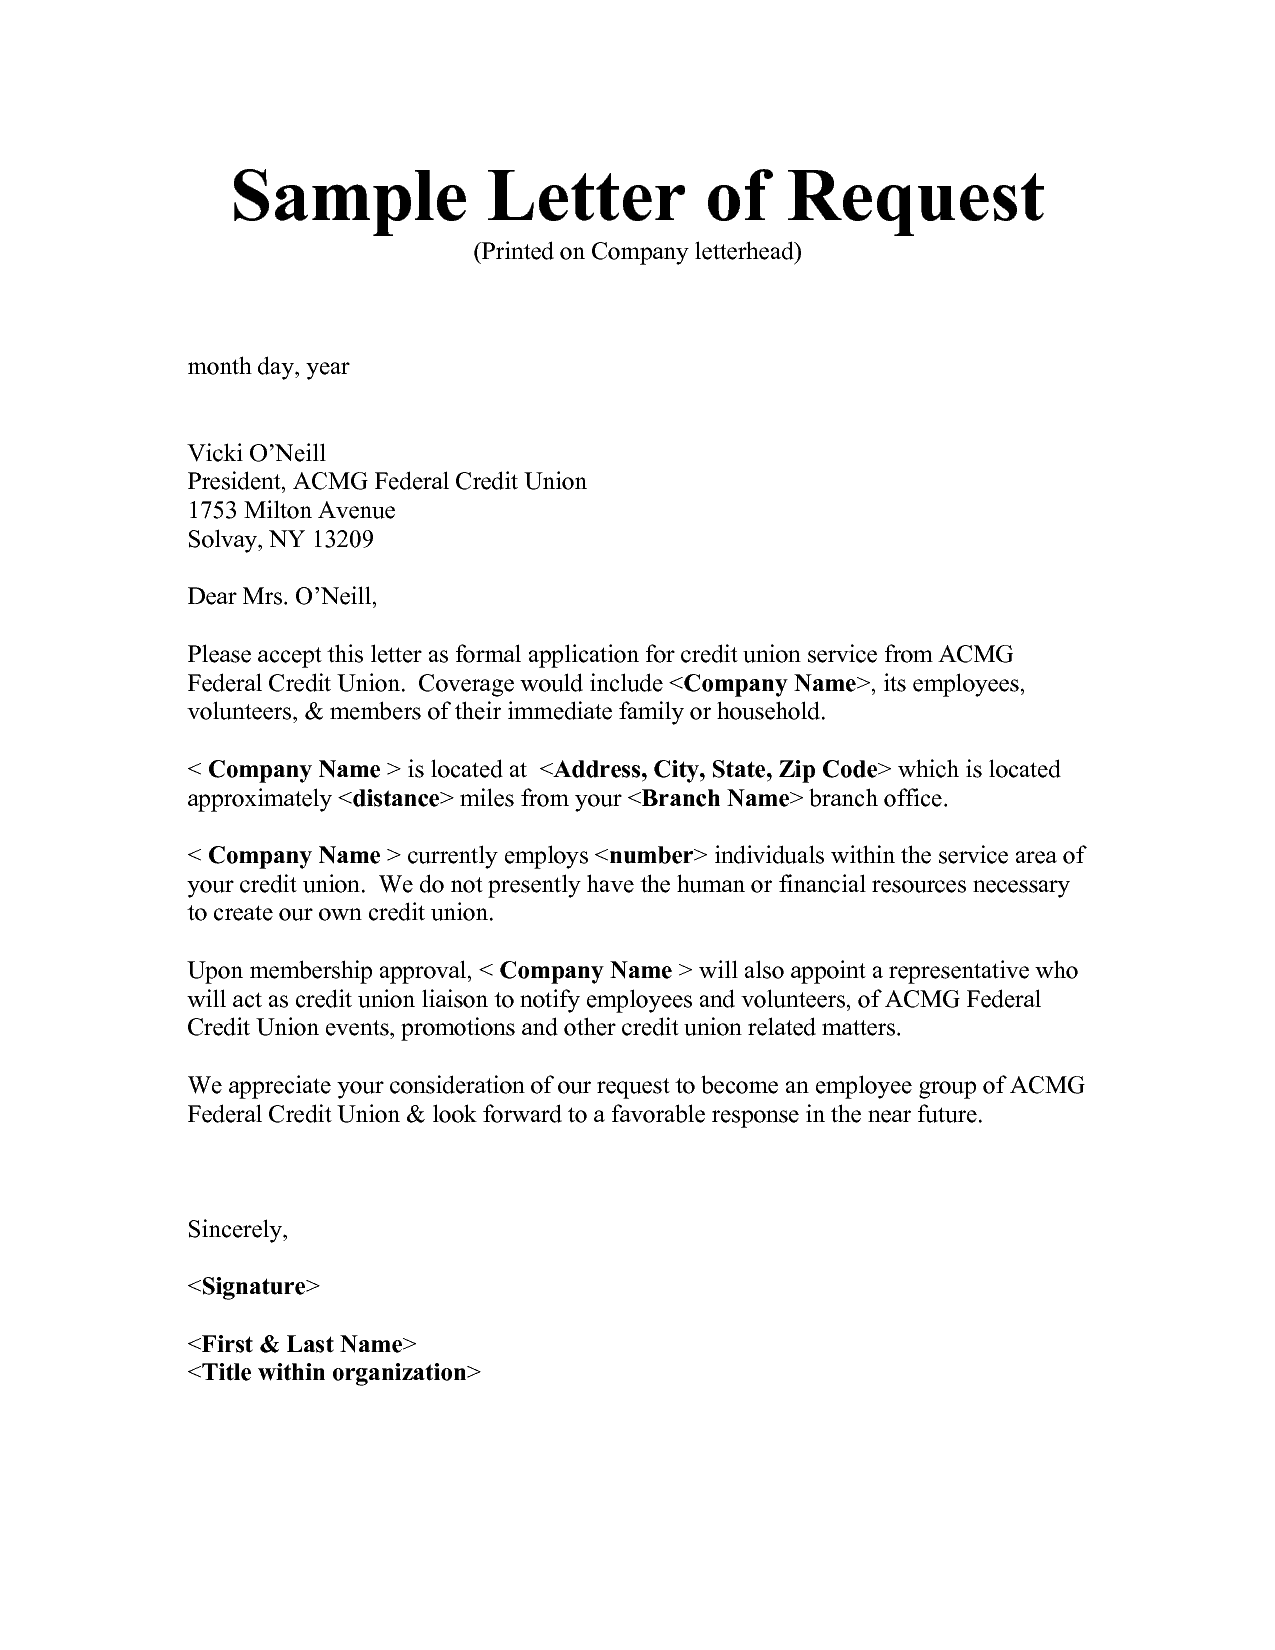 Request Business Letters